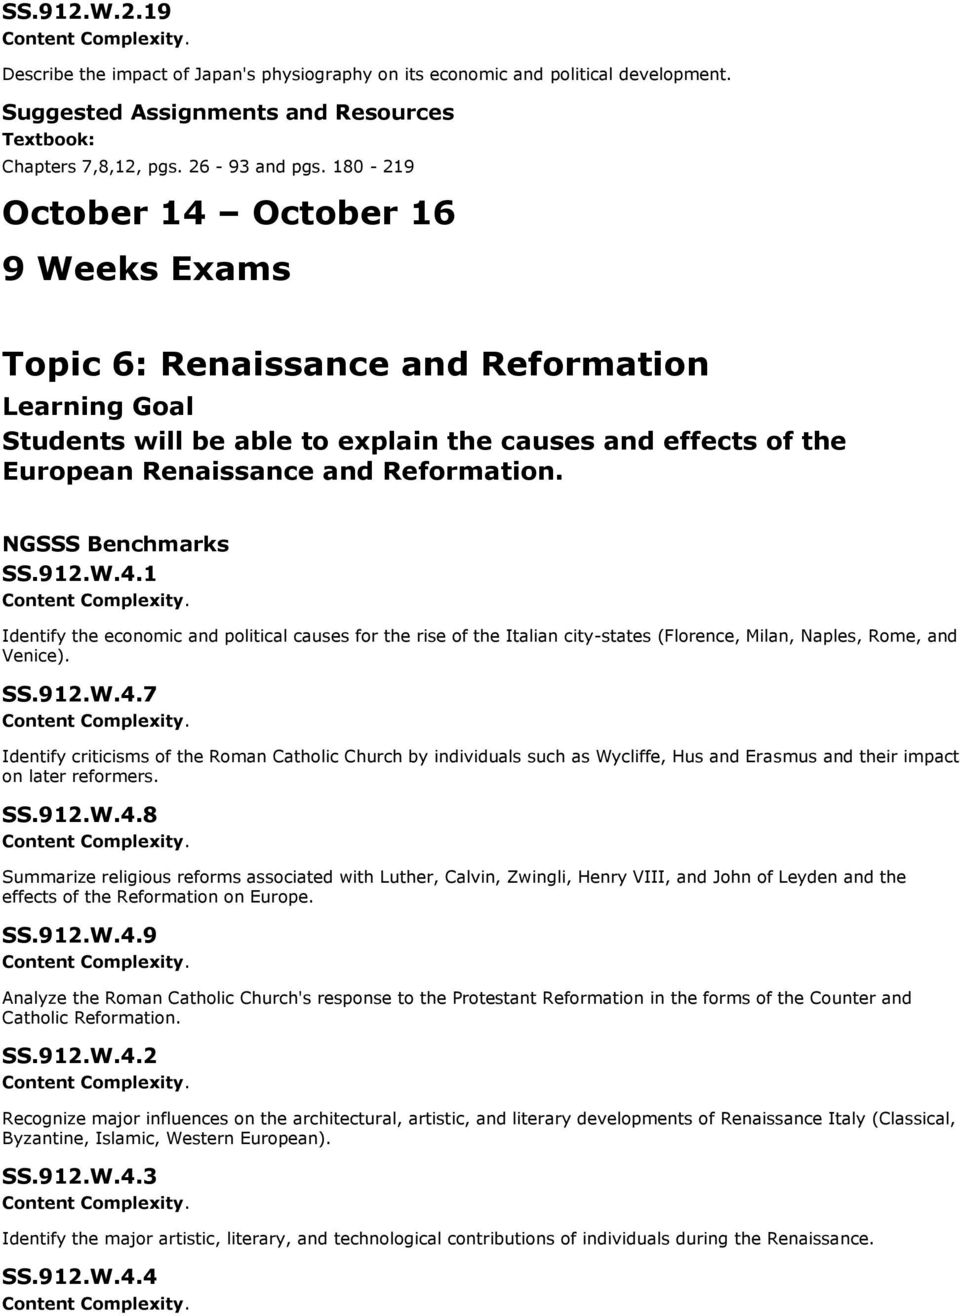 SS.912.W.4.7 Identify criticisms of the Roman Catholic Church by individuals such as Wycliffe, Hus and Erasmus and their impact on later reformers. SS.912.W.4.8 Summarize religious reforms associated with Luther, Calvin, Zwingli, Henry VIII, and John of Leyden and the effects of the Reformation on Europe.